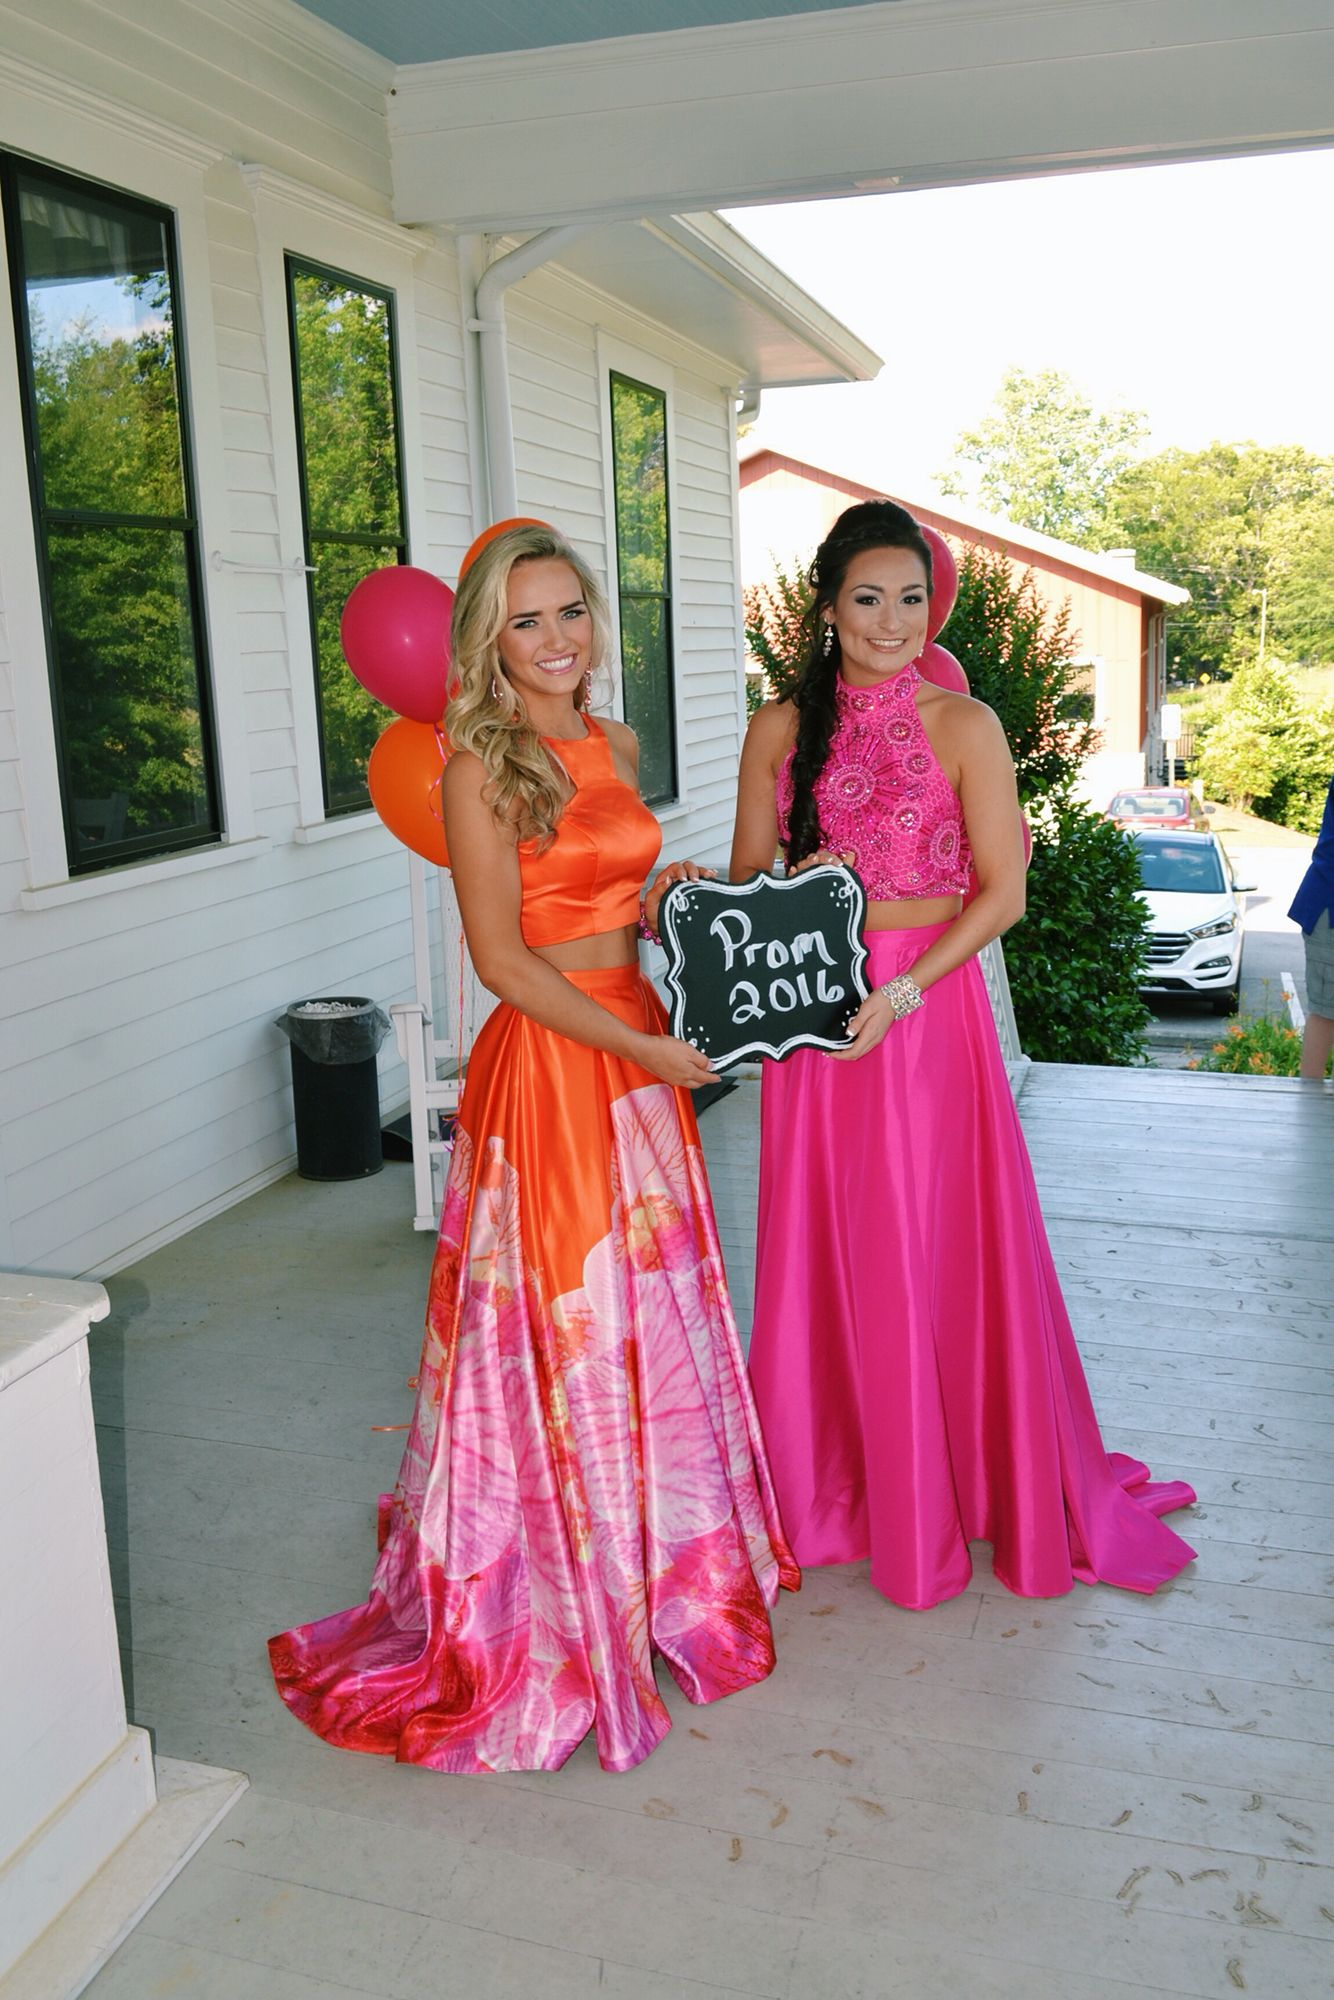 Best friend Prom Pictures | Goals | Pinterest | Vestidos de ...